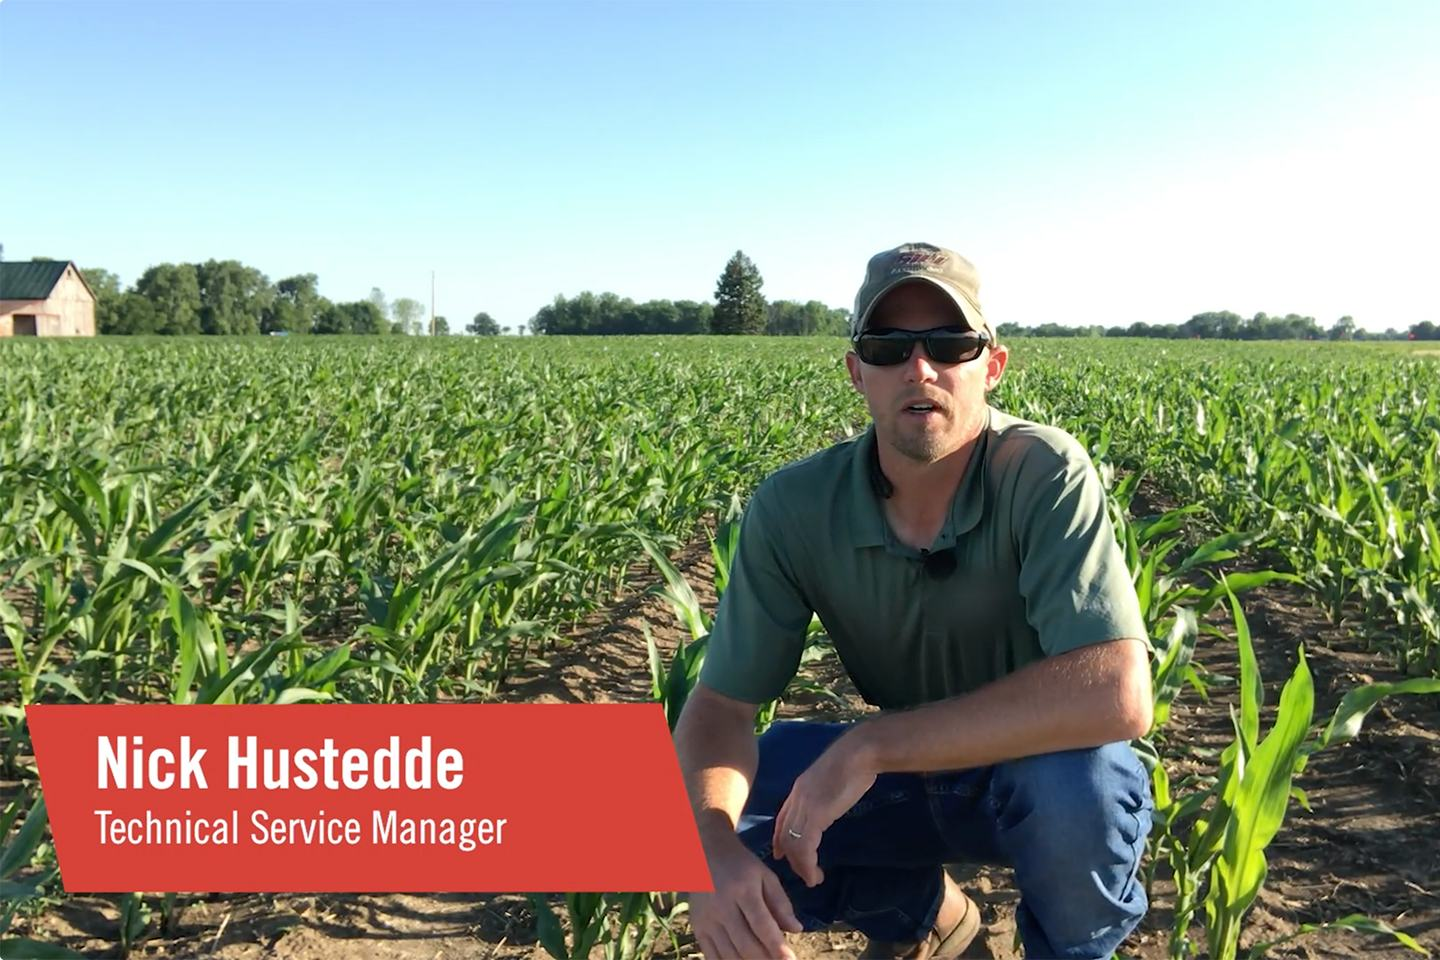 Nick Hustedde, Technical Service Manager